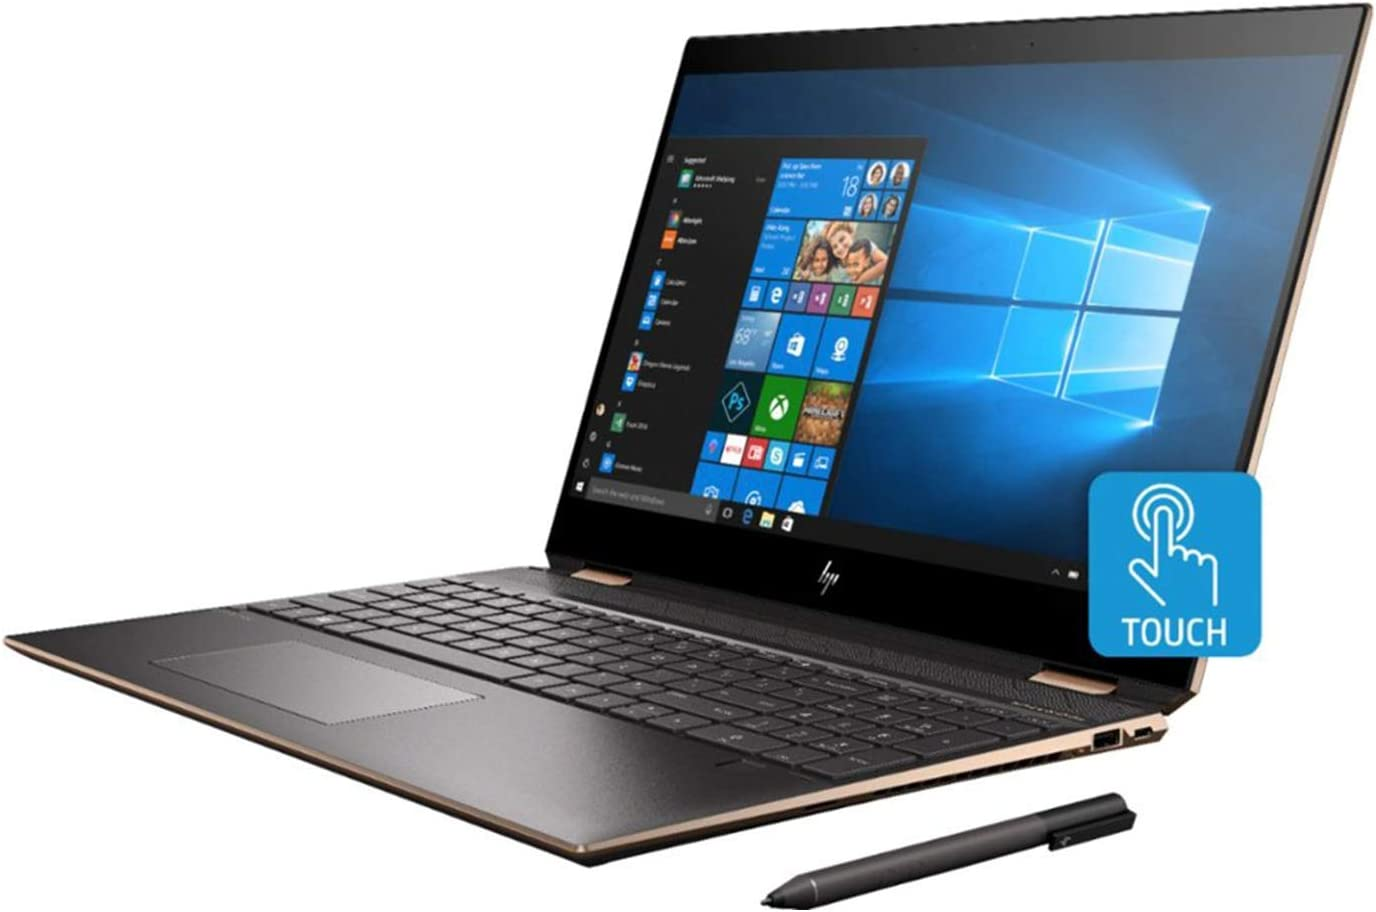 HP Spectre x360, 10th Gen Gemcut 15T,Touch 4K UHD,i7-10510U Quad Core,NVIDIA GeForce MX250 2GB,512GB NVMe SSD,16GB DDR4 2666 RAM,Win 10 Pro Pre-Installed by HP, 64GB Neopack Flash Drive, HP Prem Wty